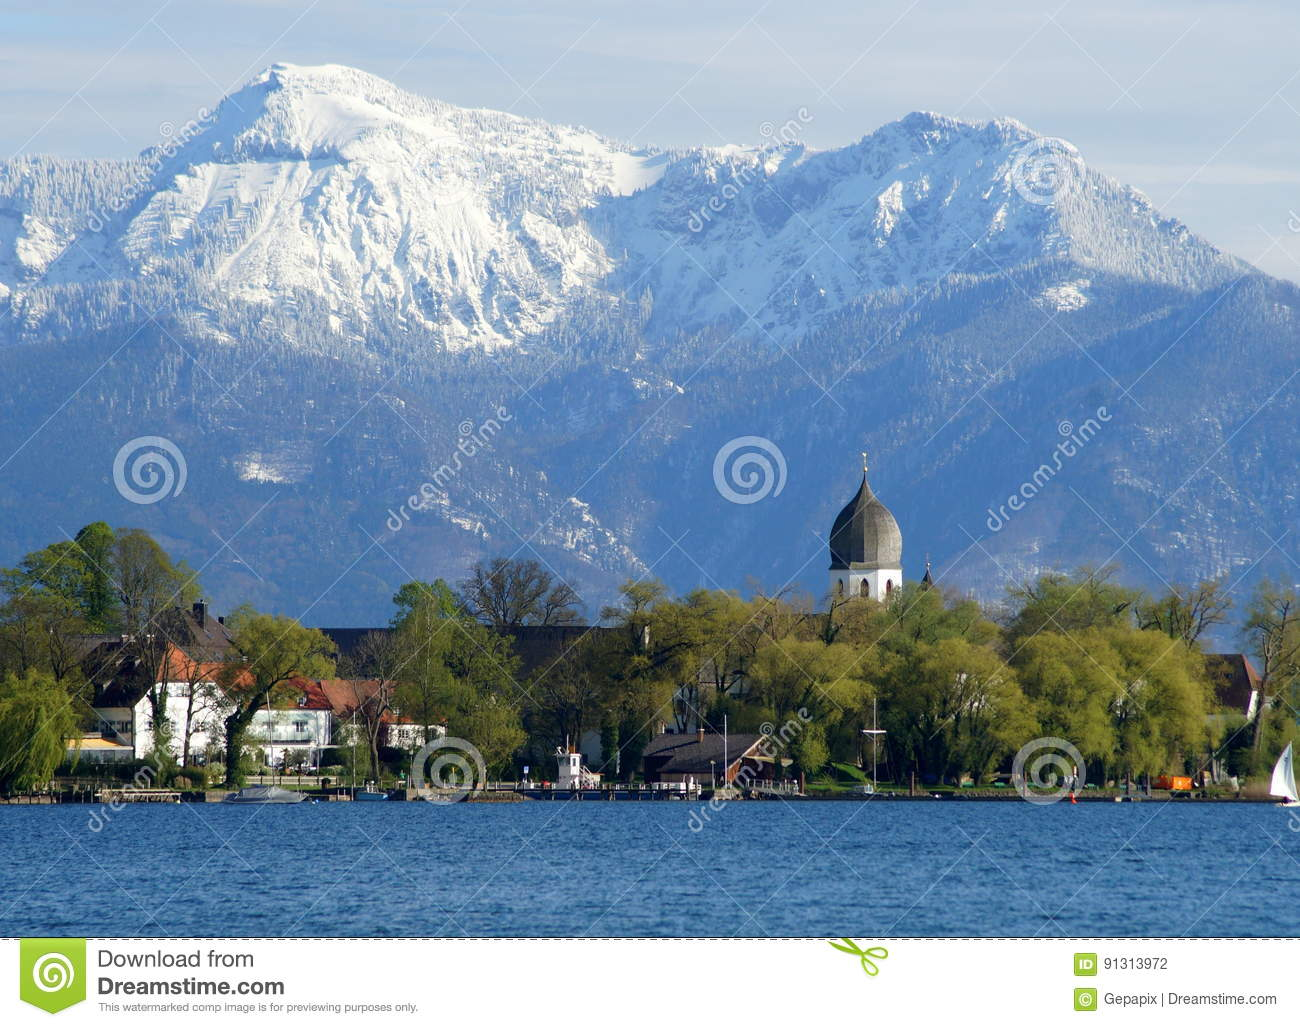 Weihnachtsmarkt Fraueninsel.Lake Chiemsee Stock Photo Image Of Lake Fraueninsel 91313972